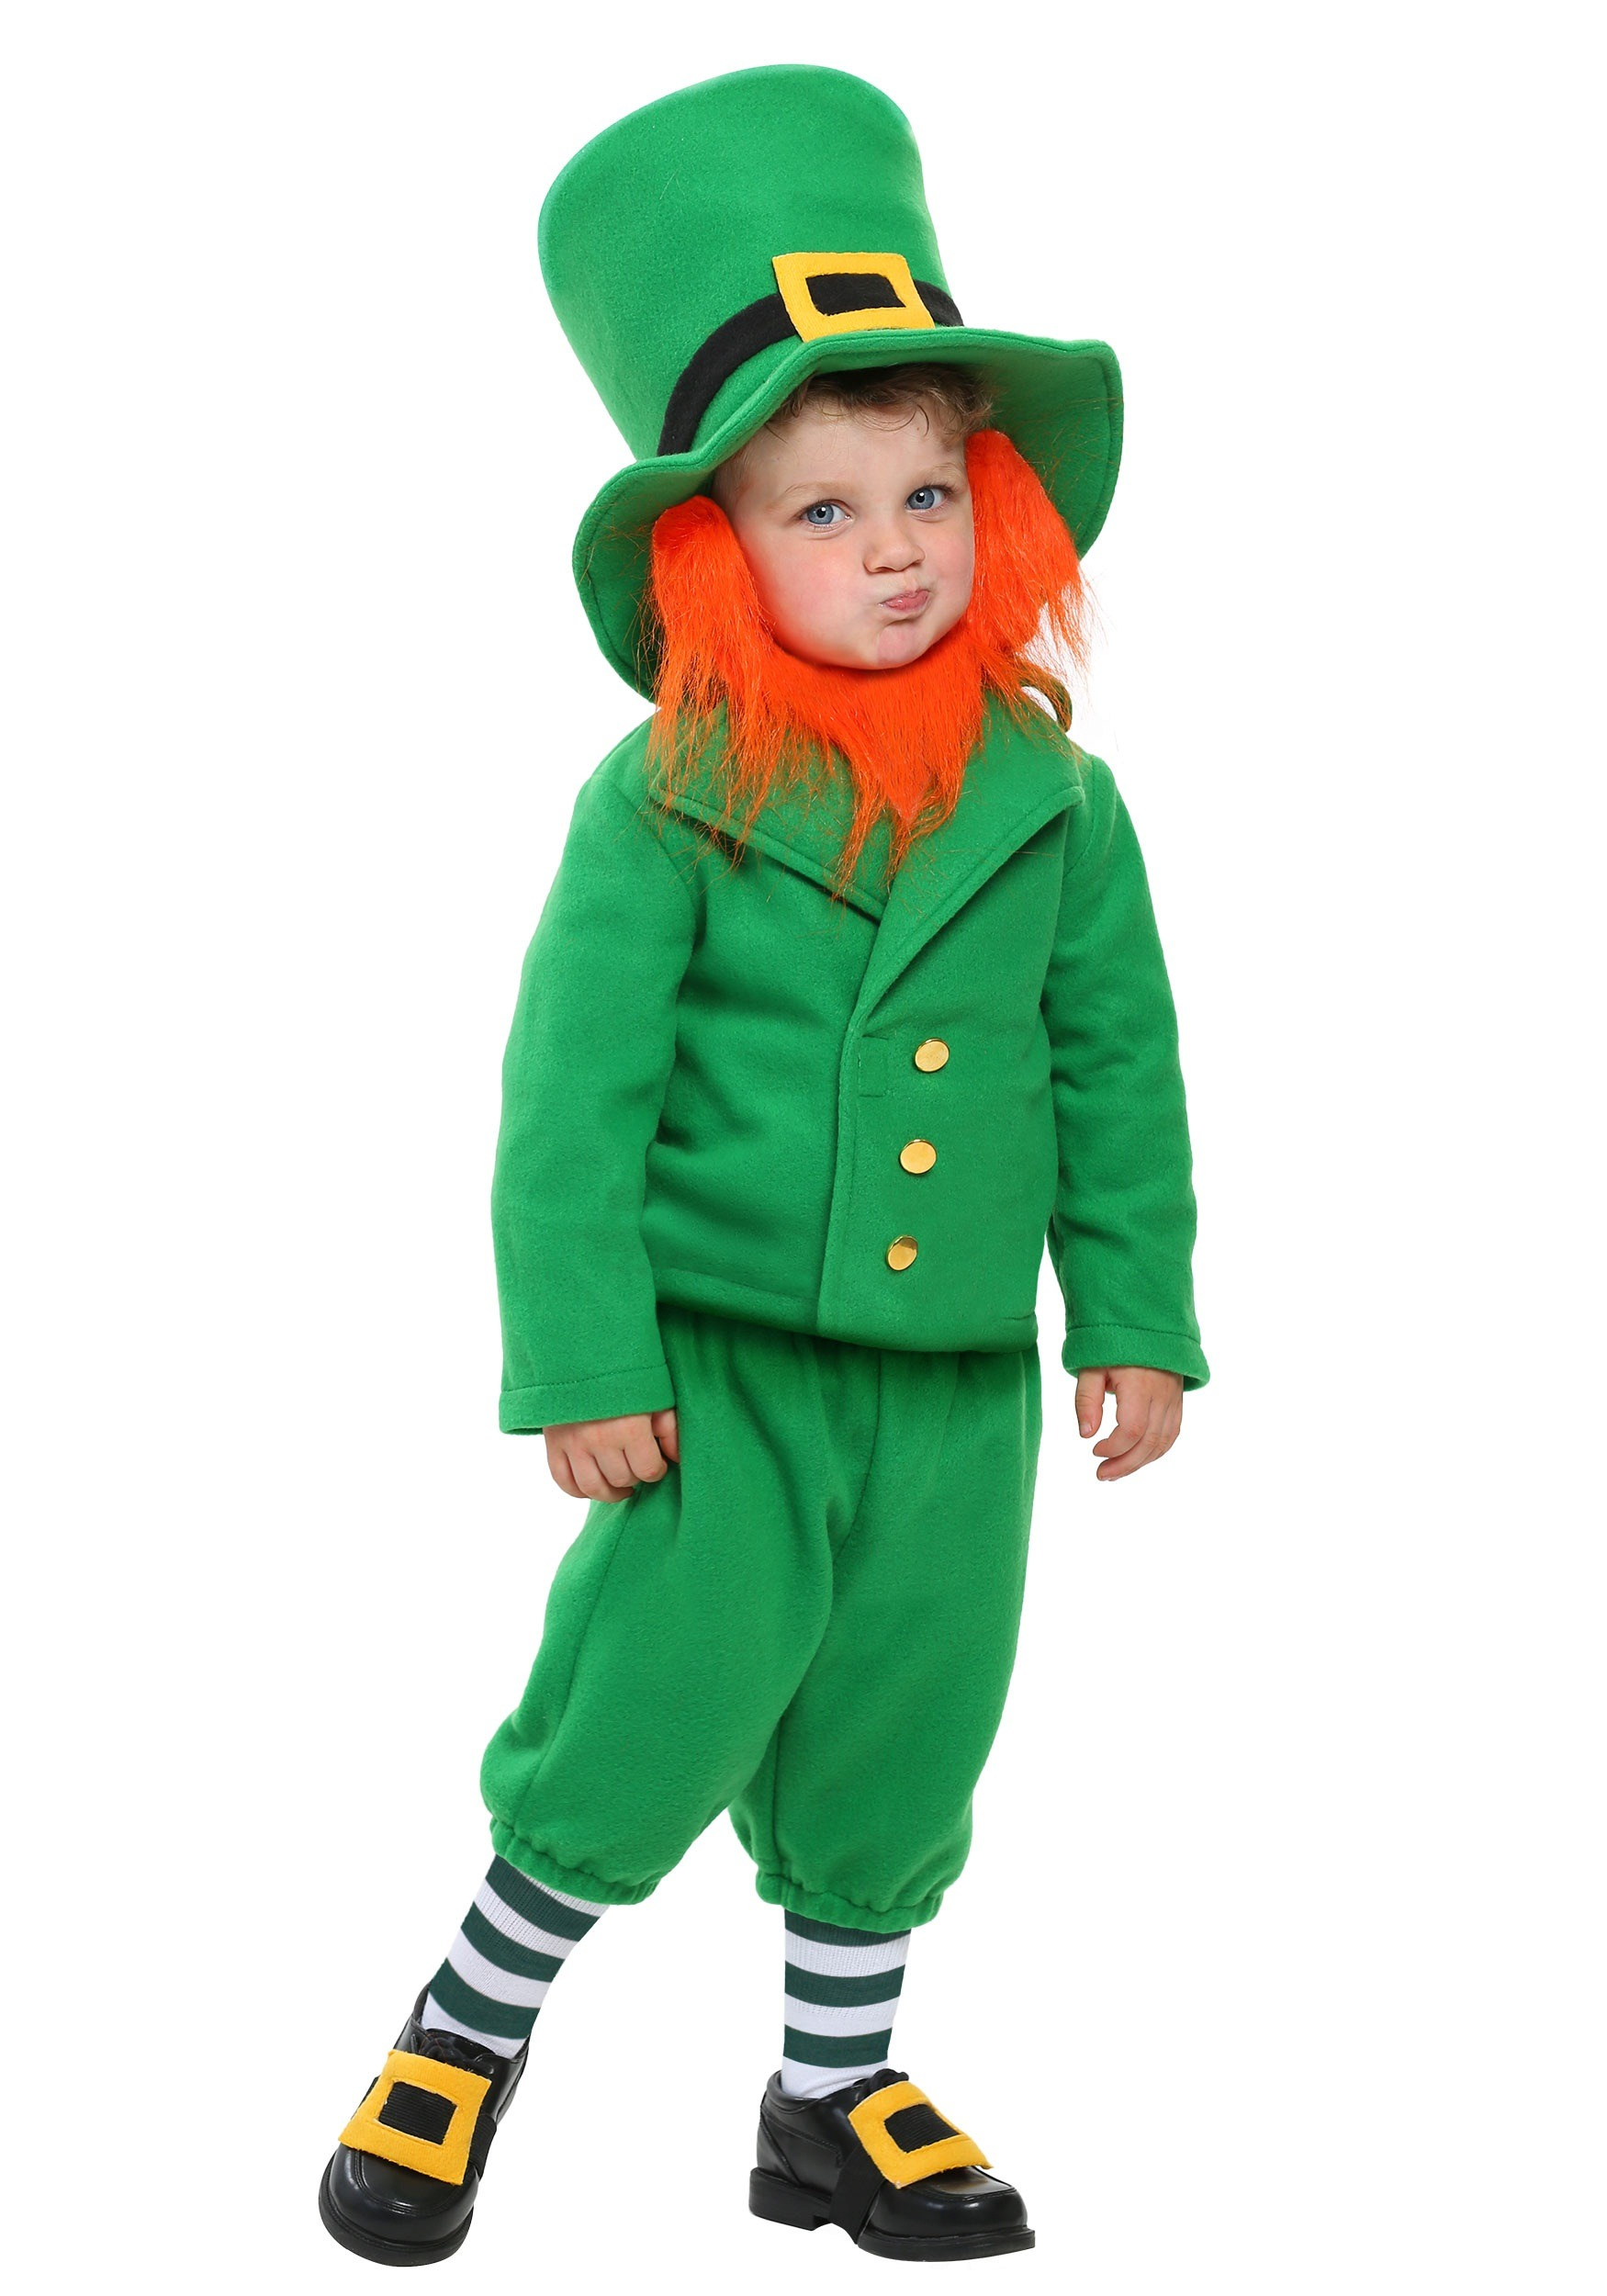 Wee Little Leprechaun Toddler Costume  sc 1 st  Fun.com & Wee Little Leprechaun Costume for Toddlers